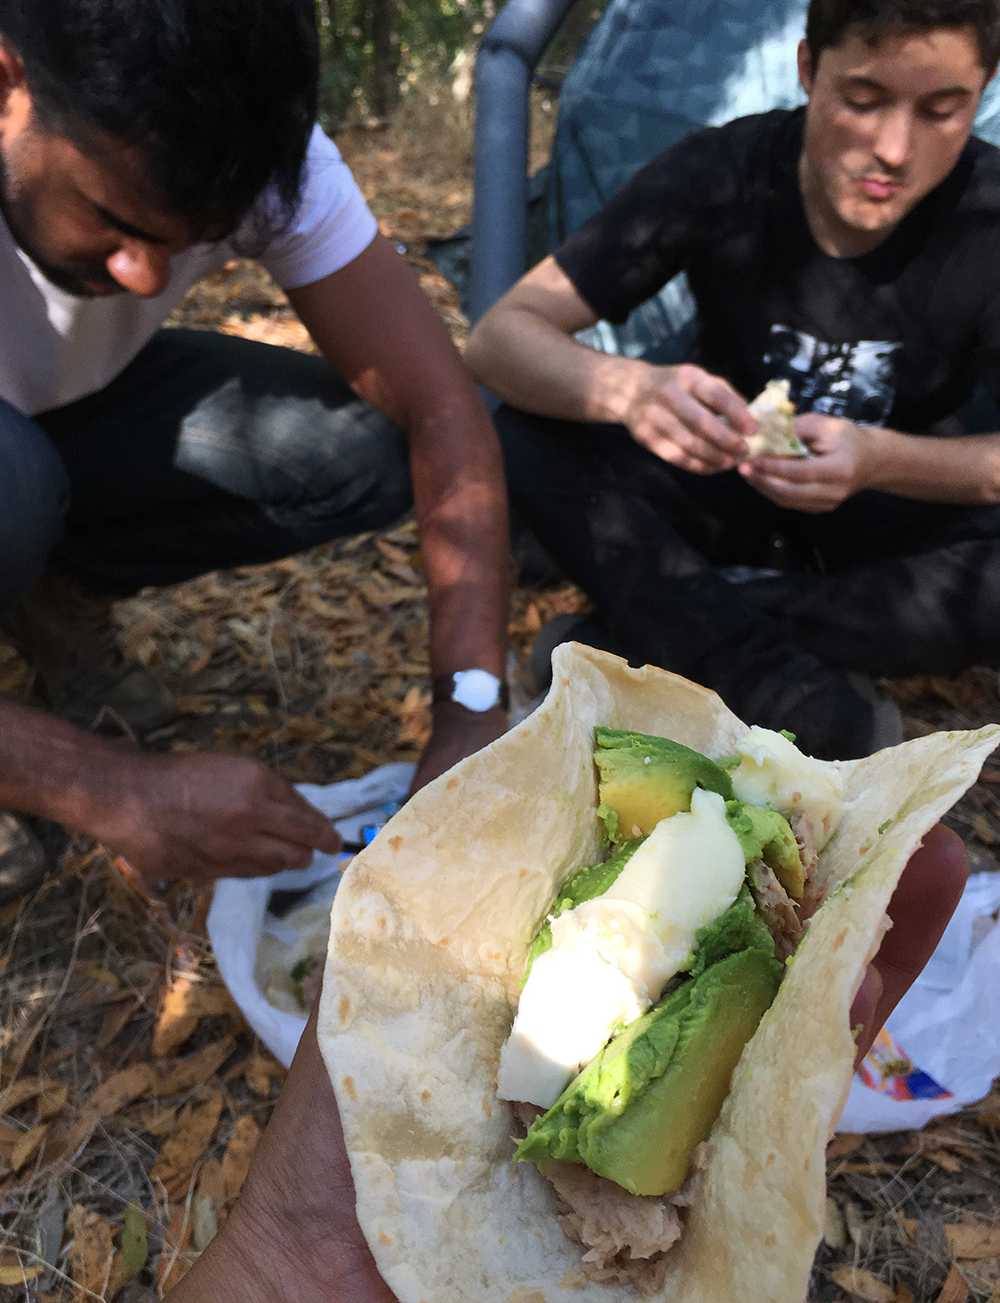 Our hobo life meal out in california back country.